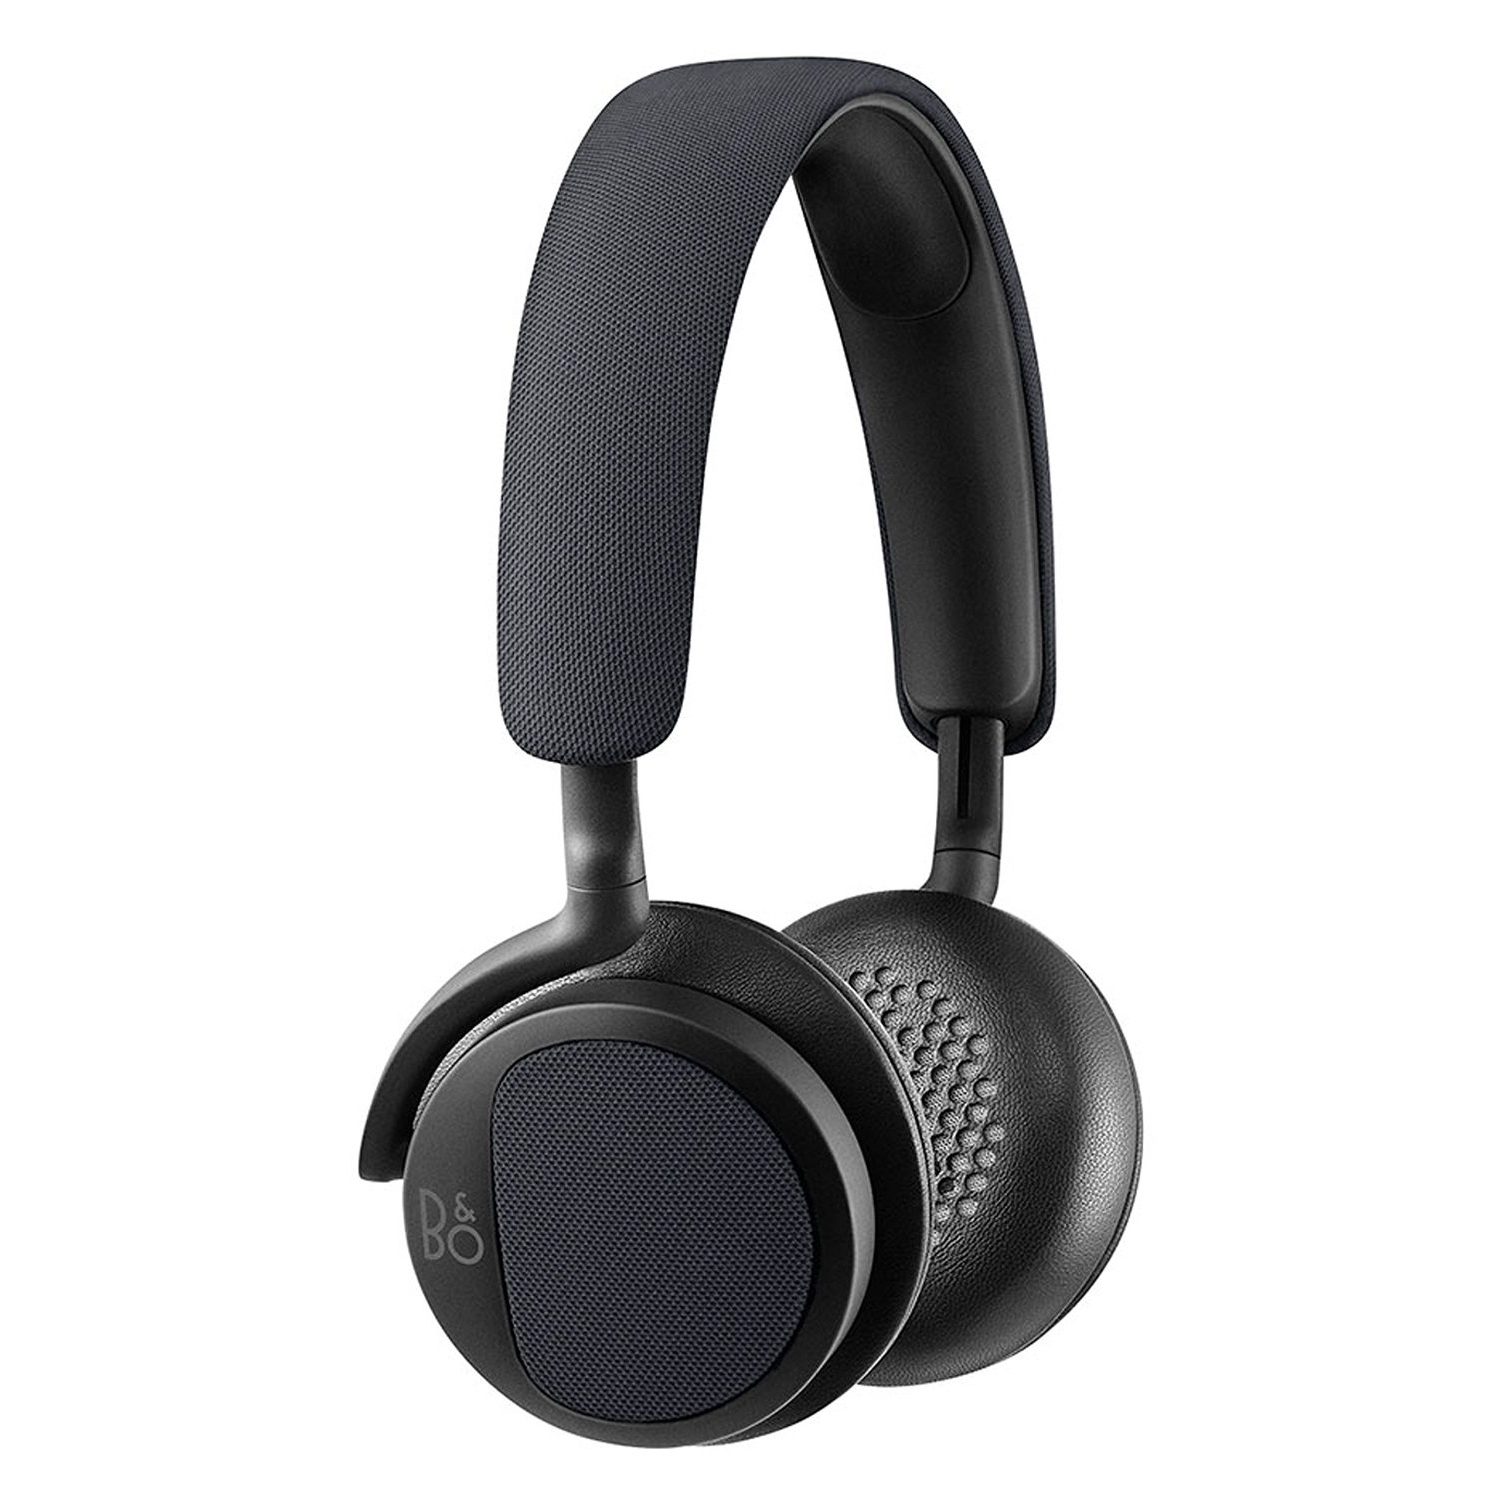 BO BeoPlay H2